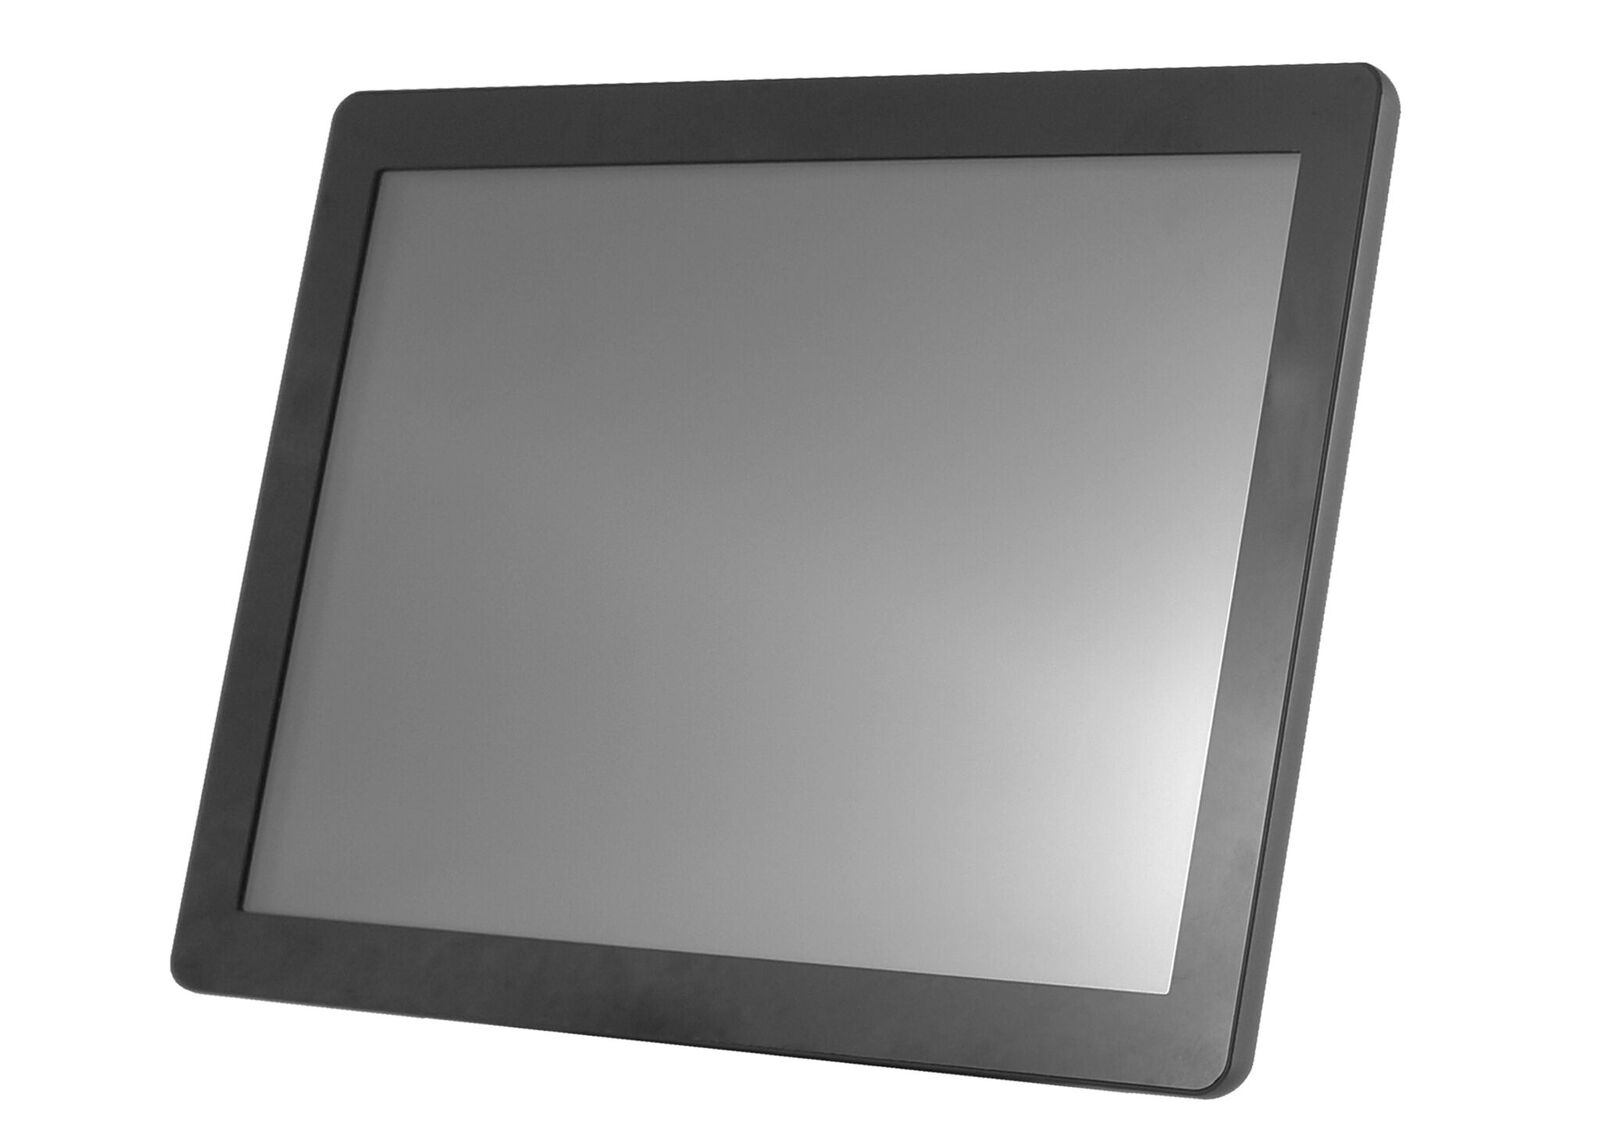 "10"" Glass display - 800x480, 250nt,VGA"